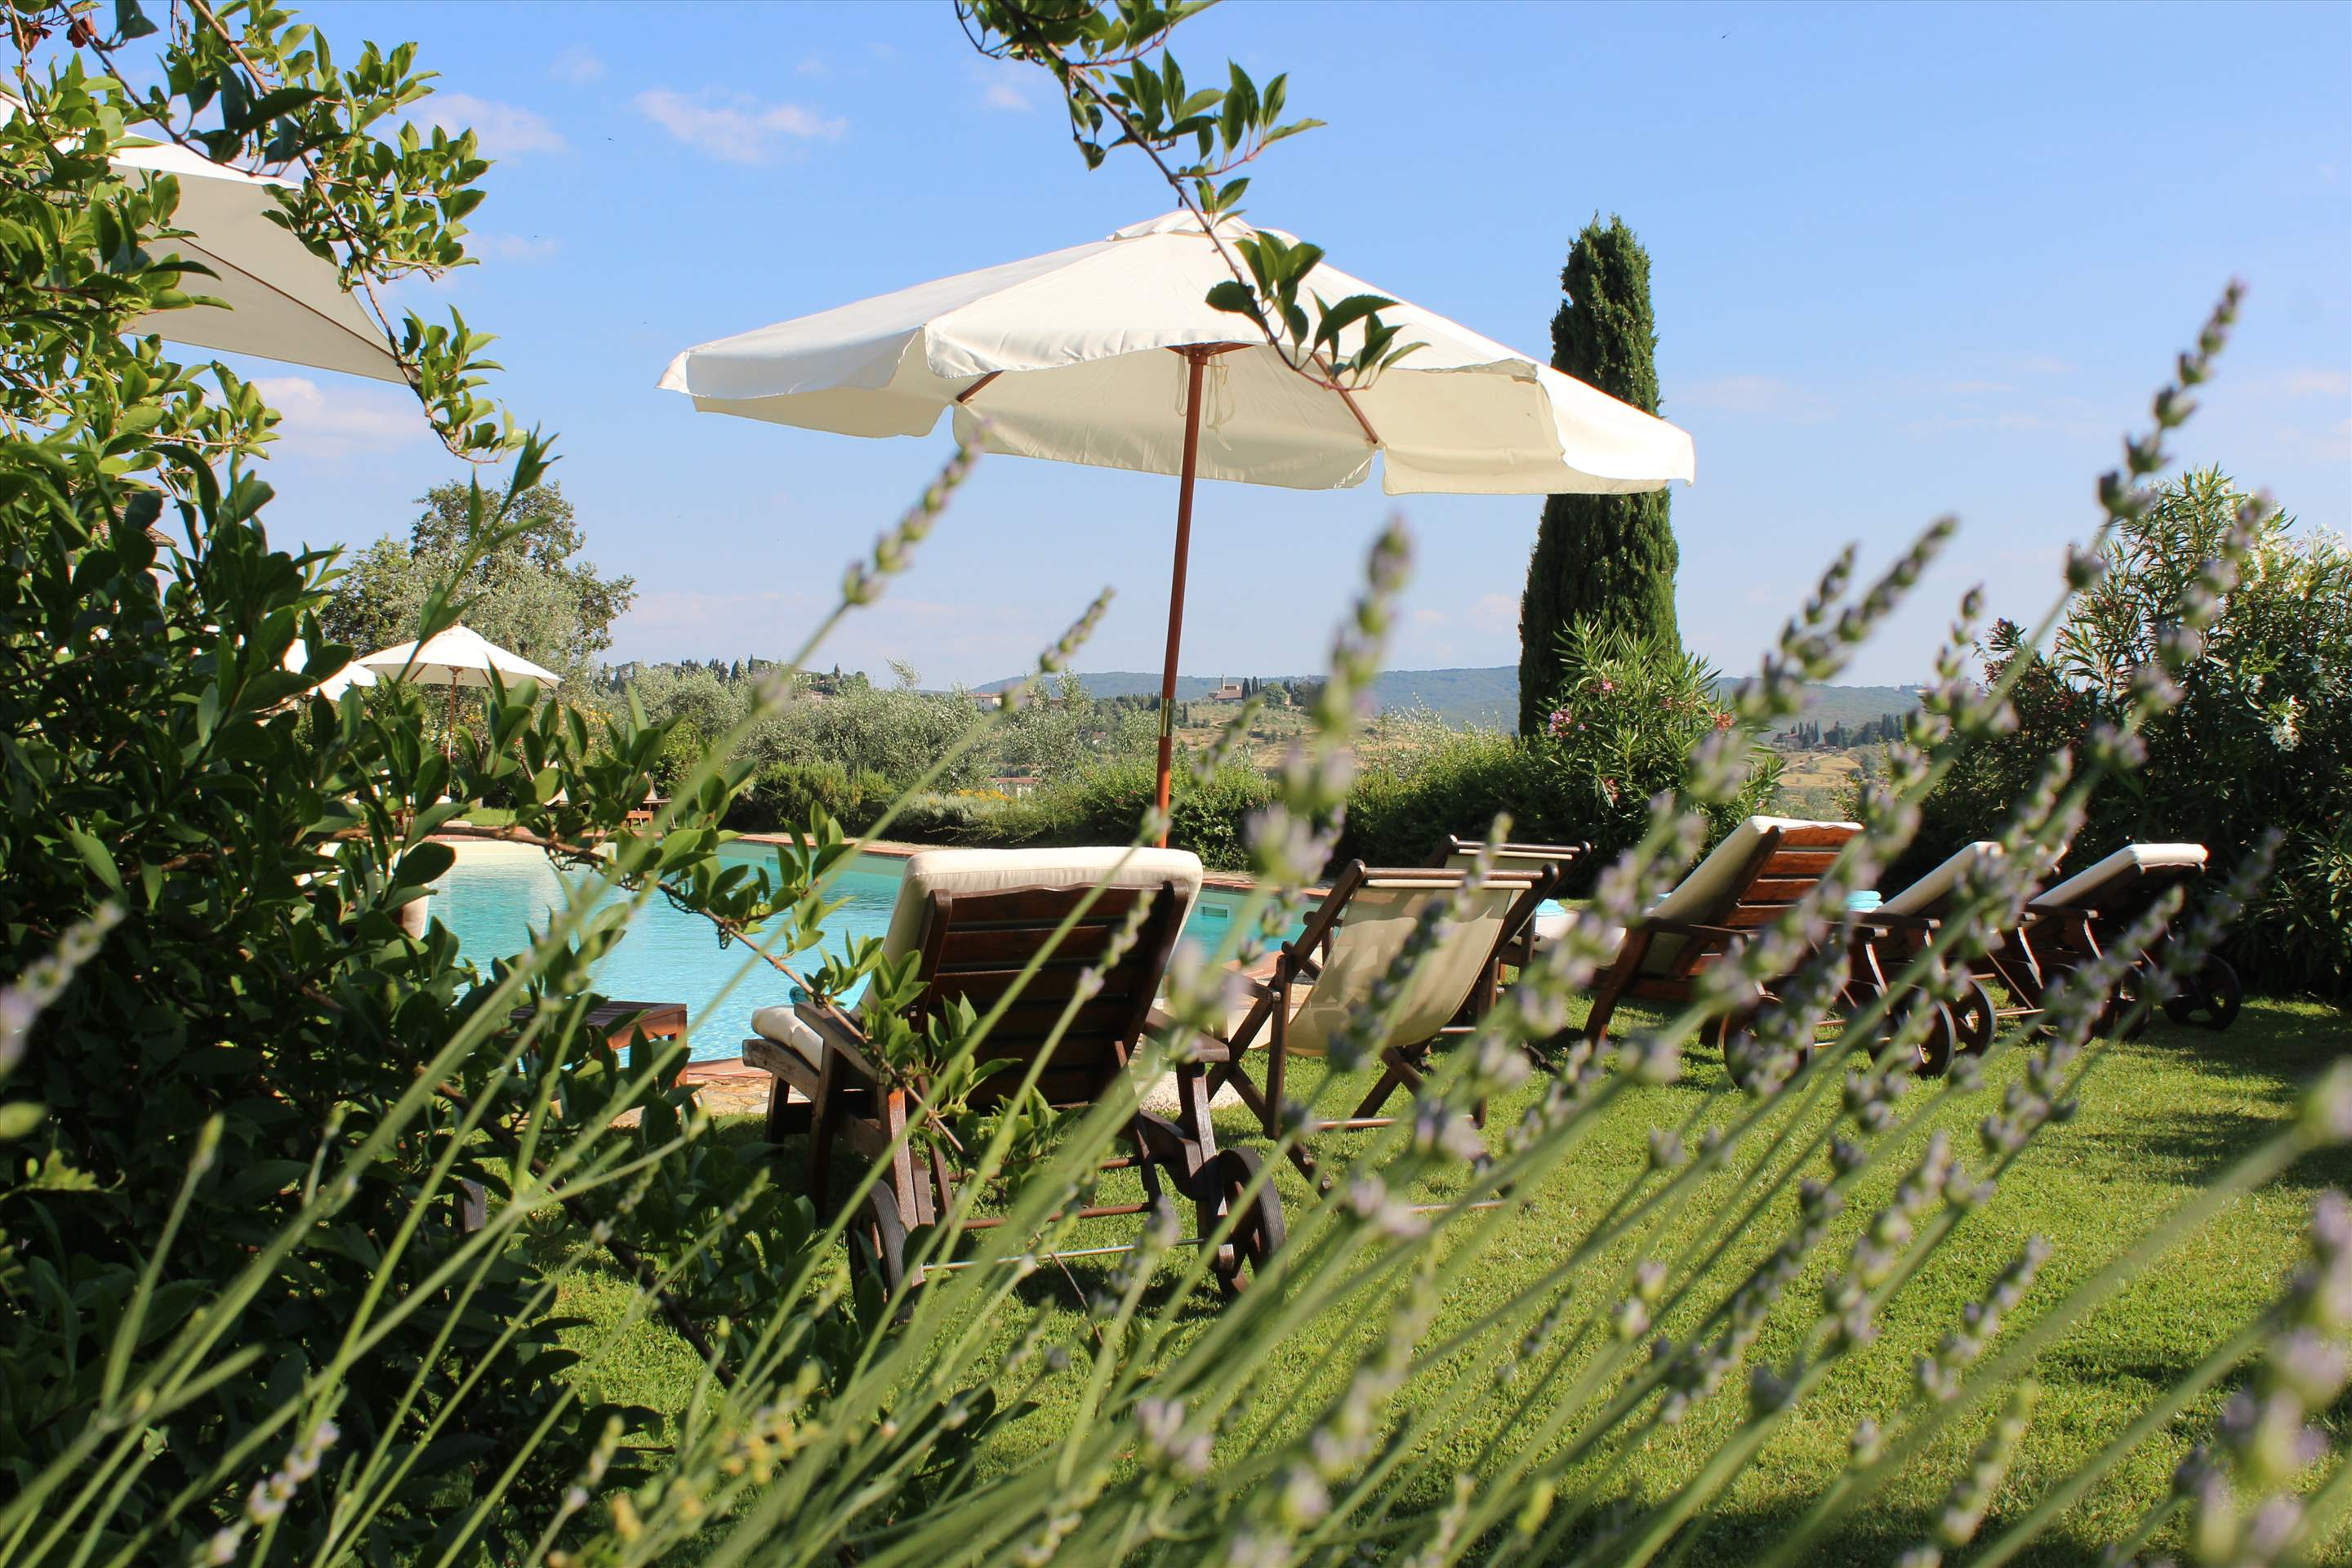 Apartment Limonaia, 1 bedroom apartment in Chianti & Countryside, Tuscany Photo #11